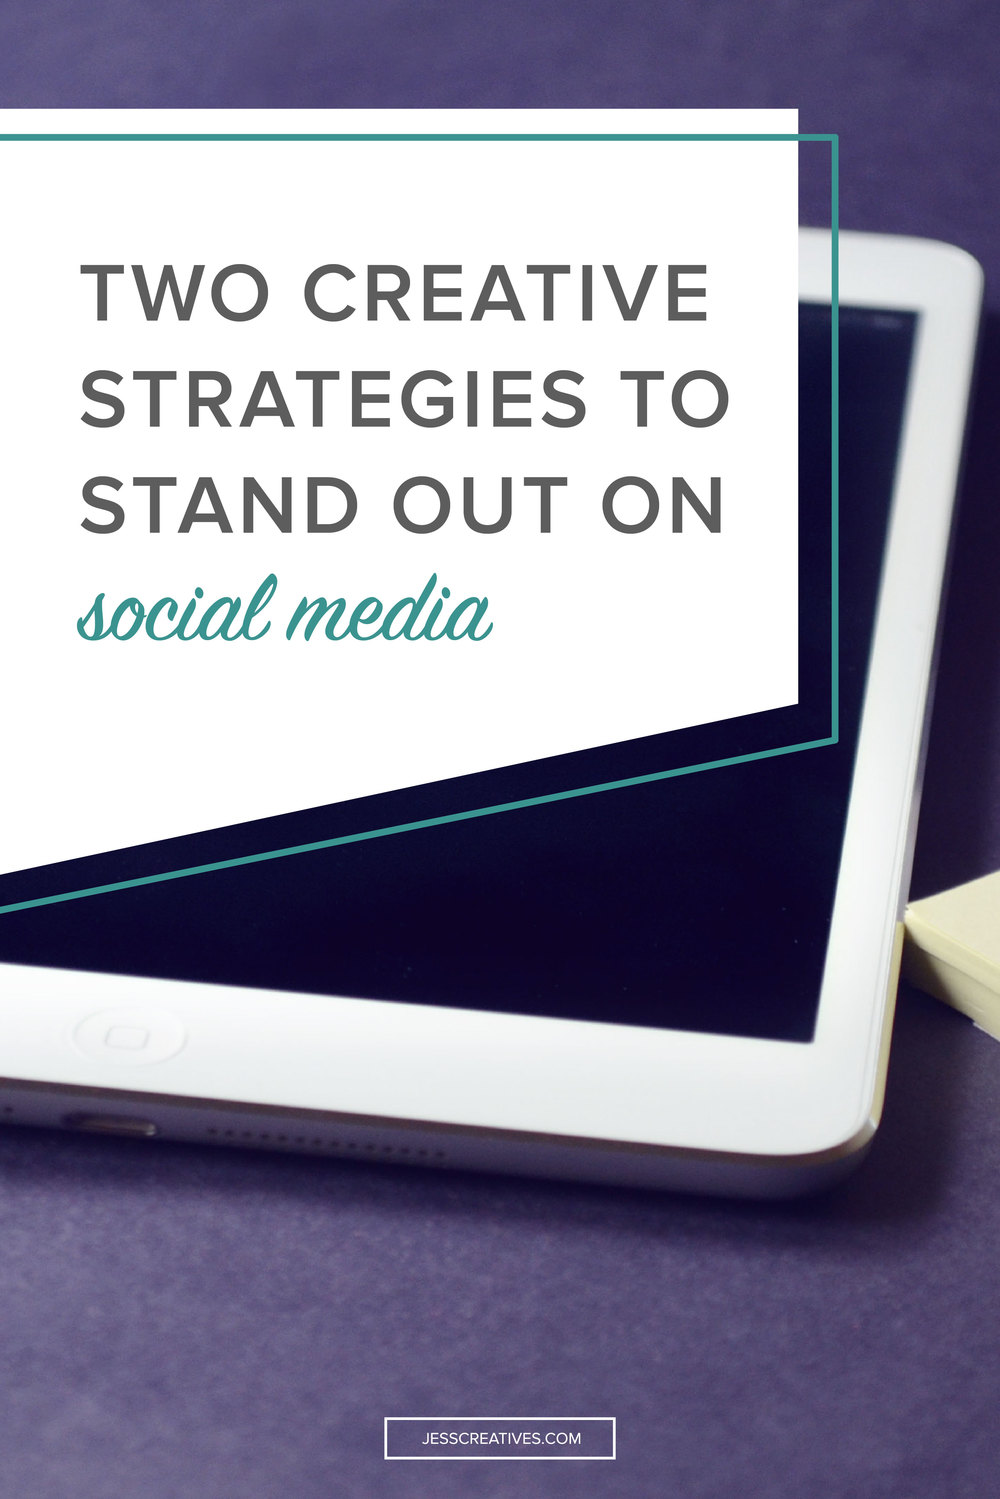 With millions of users on social media, and 1 million links shared on Facebook every 20 minutes, there's no question as to why some people aren't getting the engagement that they so desire. So, how can you stand out on social media? In a busy feed full of text, beautiful, branded visuals are a great way to grab your audience's eyes.